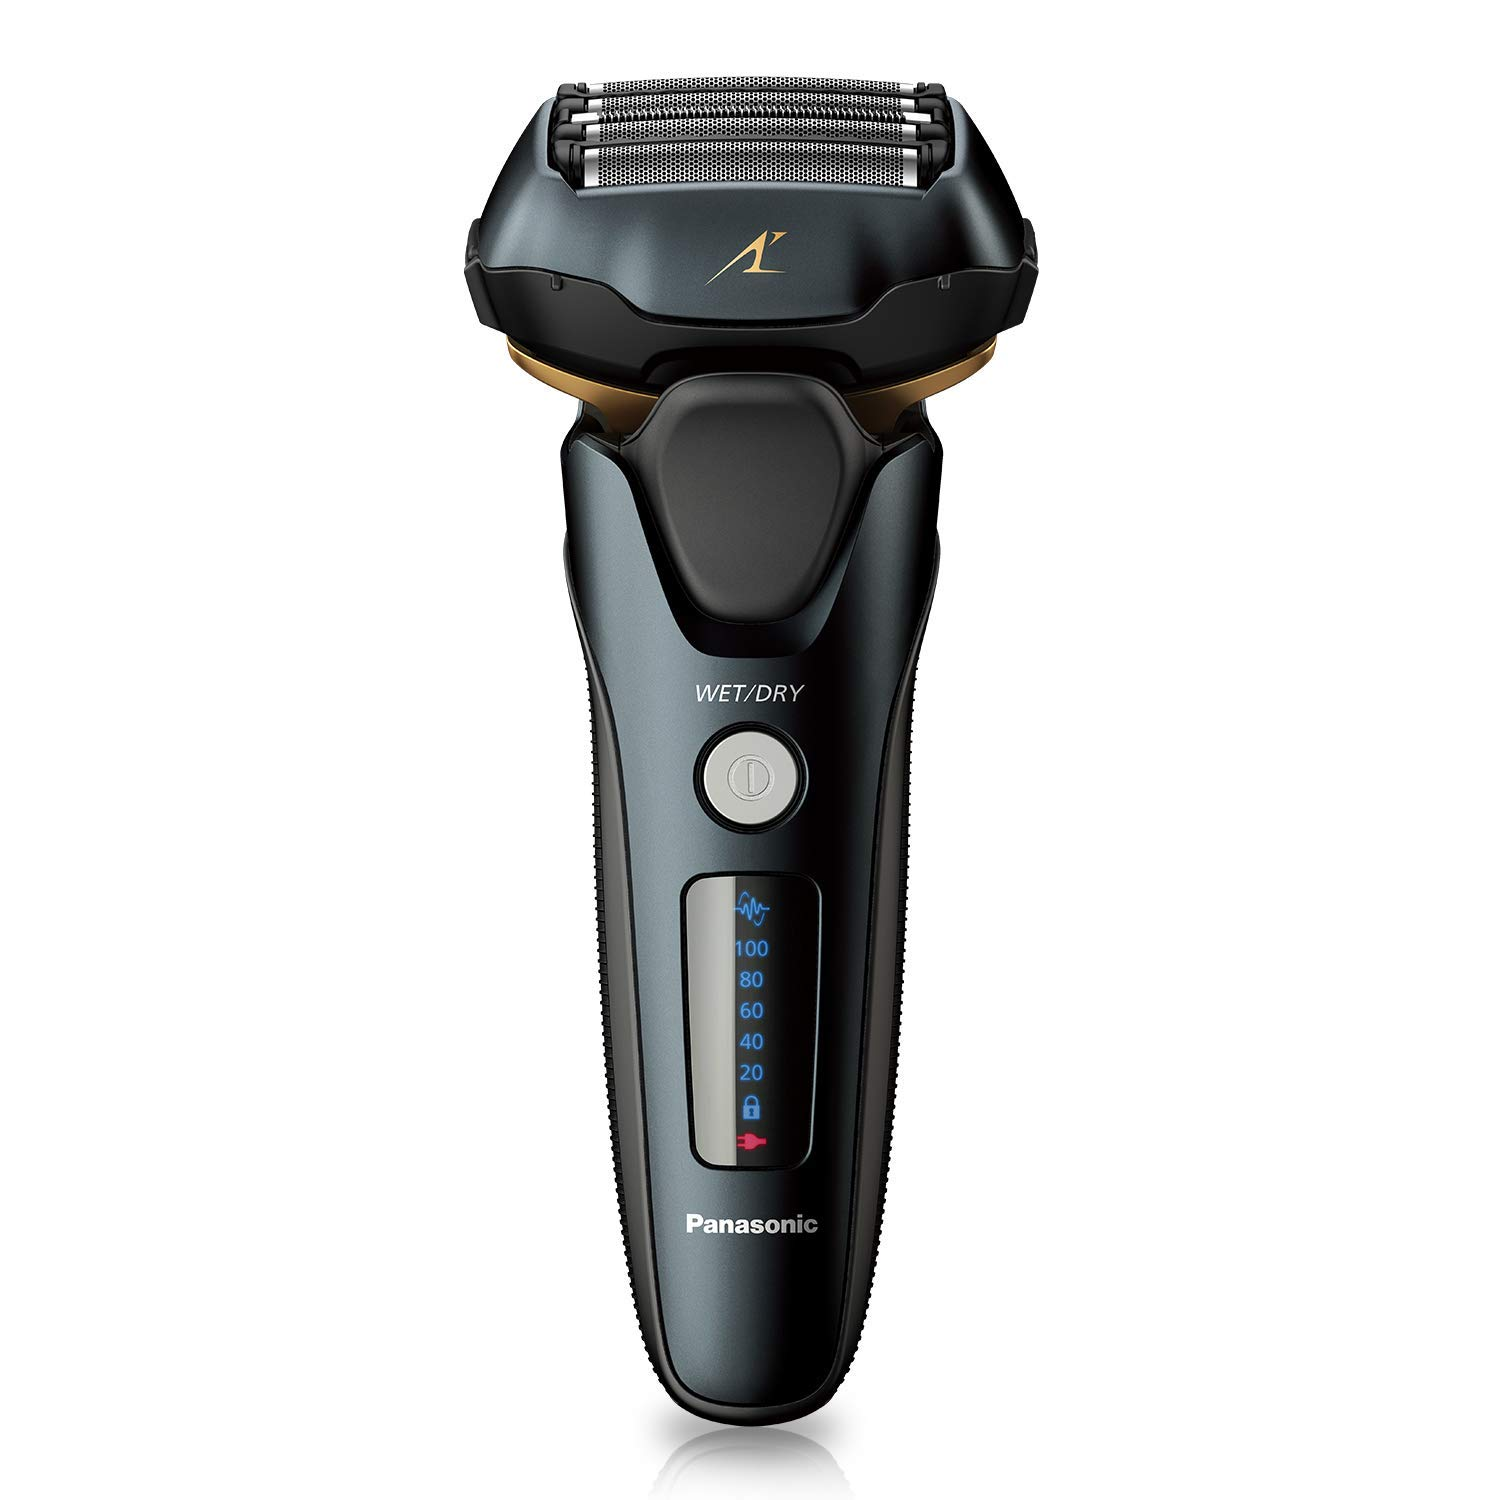 Panasonic Arc5 wet Dry Electric Shaver for Men With Pop-Up Trimmer, 16-D Flexible Pivoting Head Intelligent Shaving Sensor, ES-LV67-K, Black